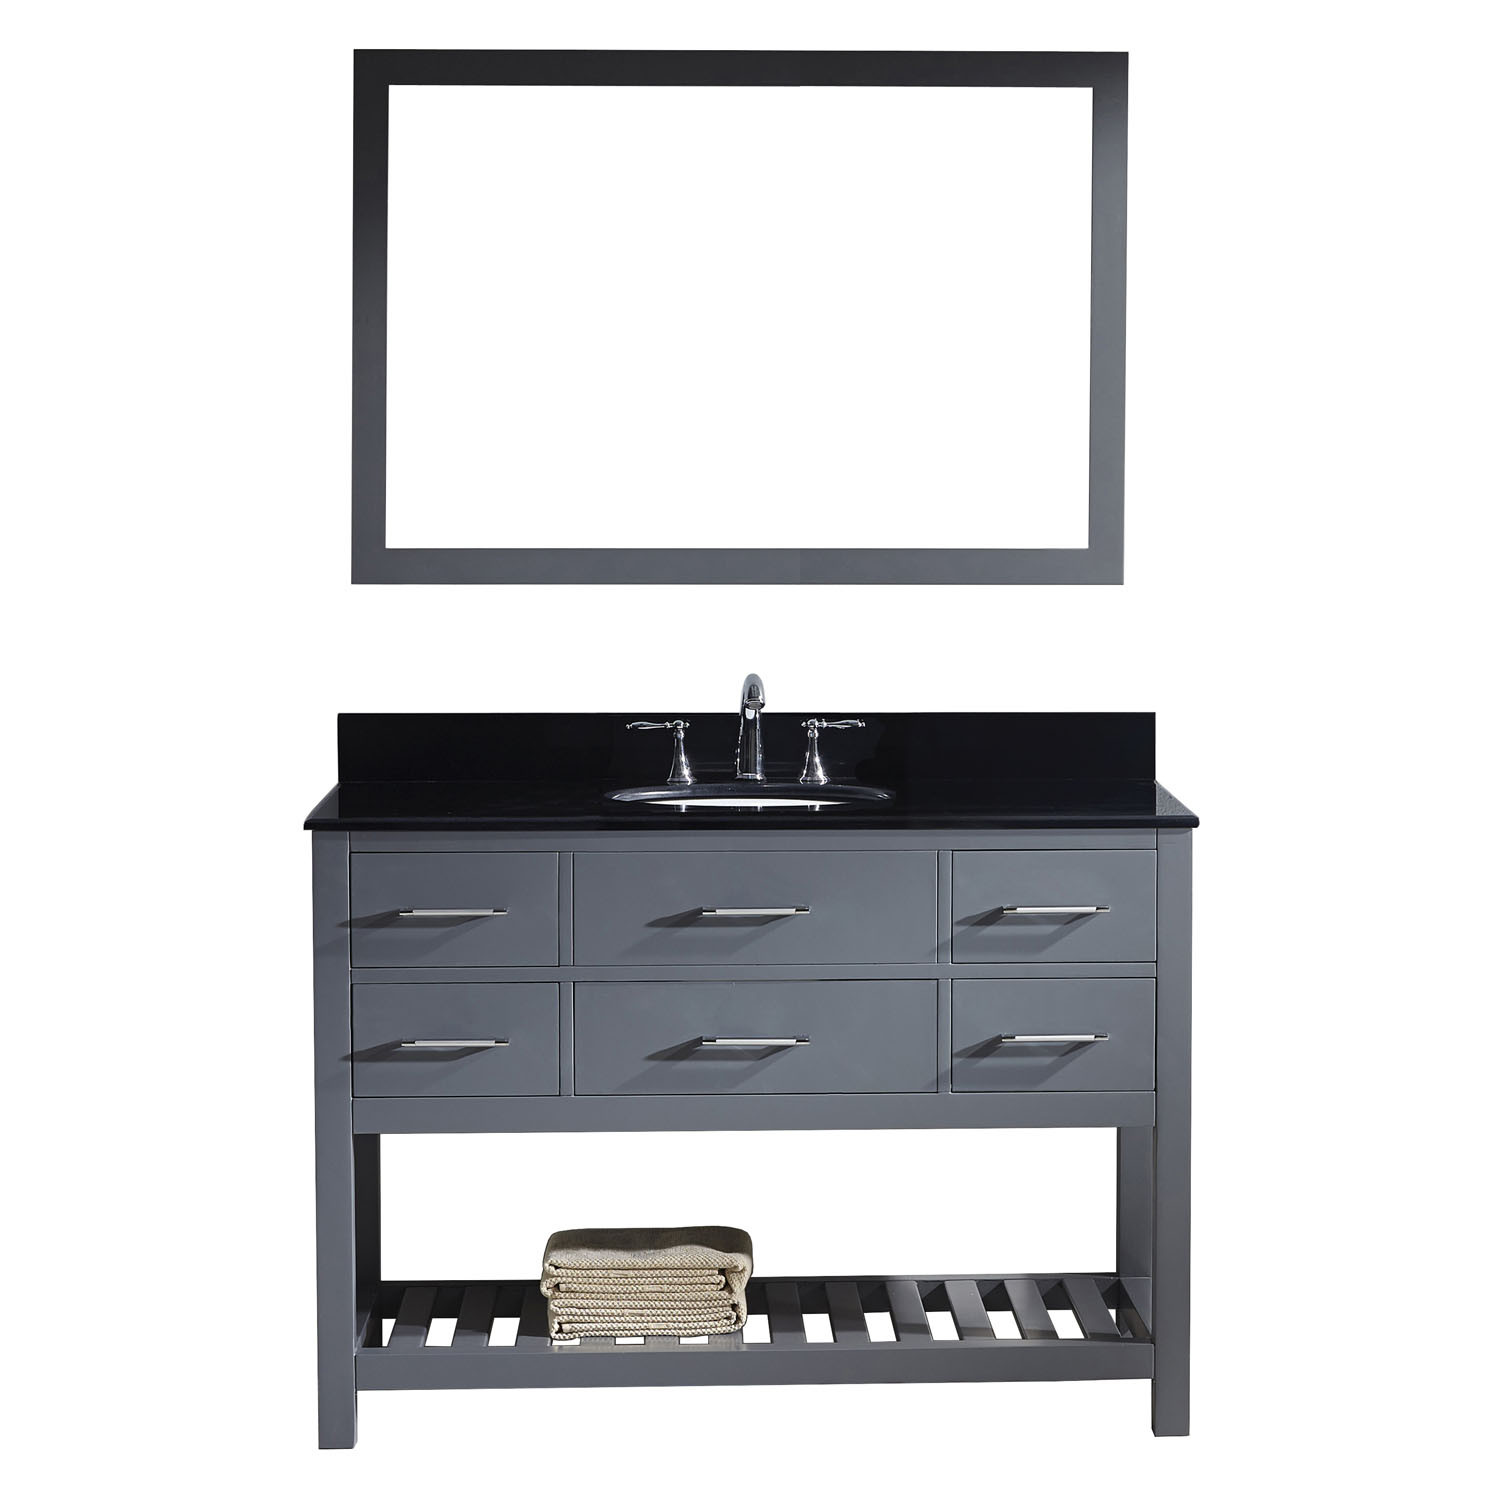 Virtu MS-2248-BGRO-GR-001 Caroline Estate 48 Inch Single Bathroom Vanity Set In Grey